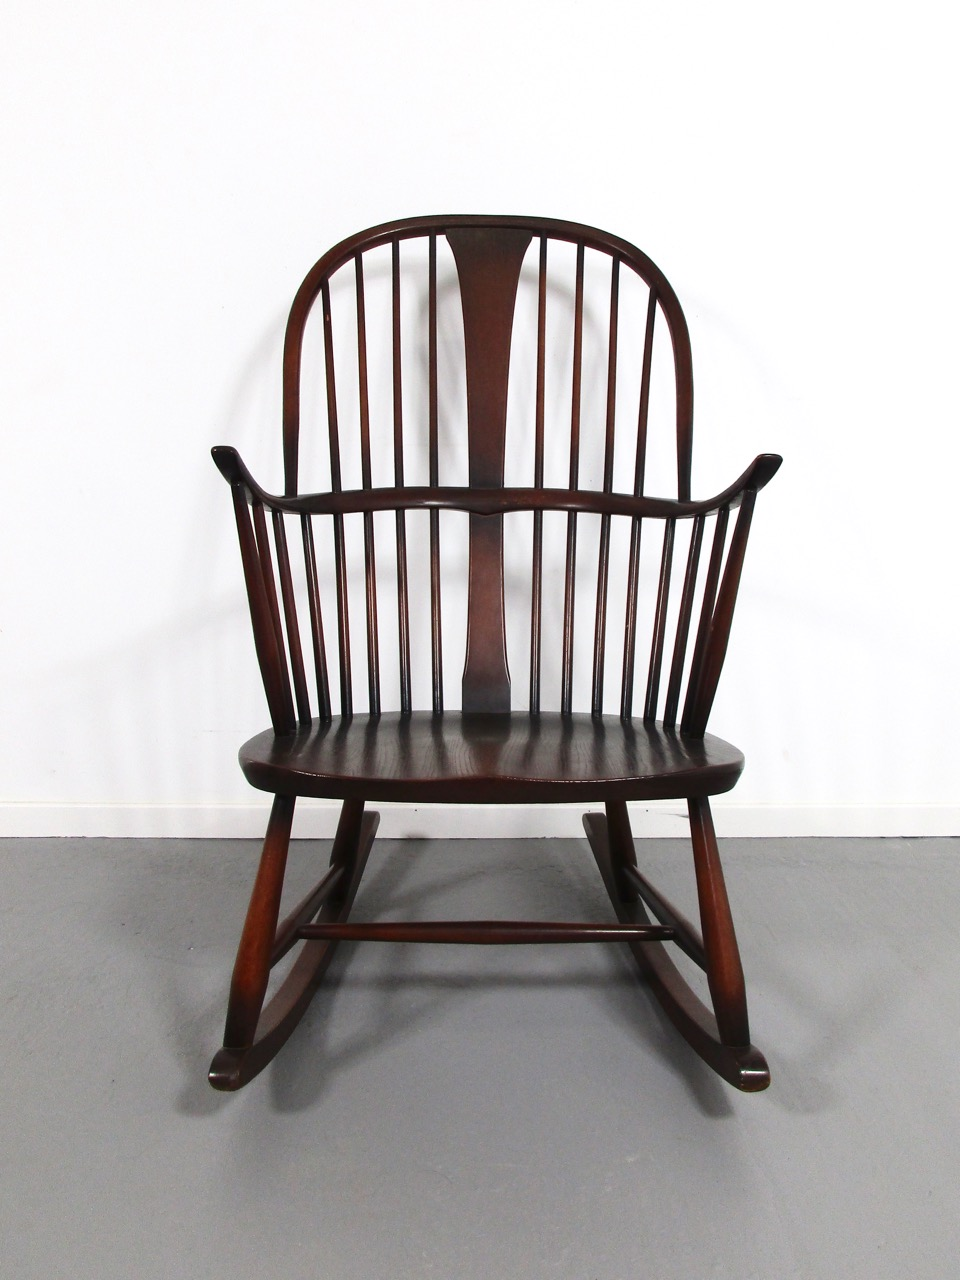 Schaukelstuhl rocking chair ercol england 4 retro salon for Rocking chair schaukelstuhl